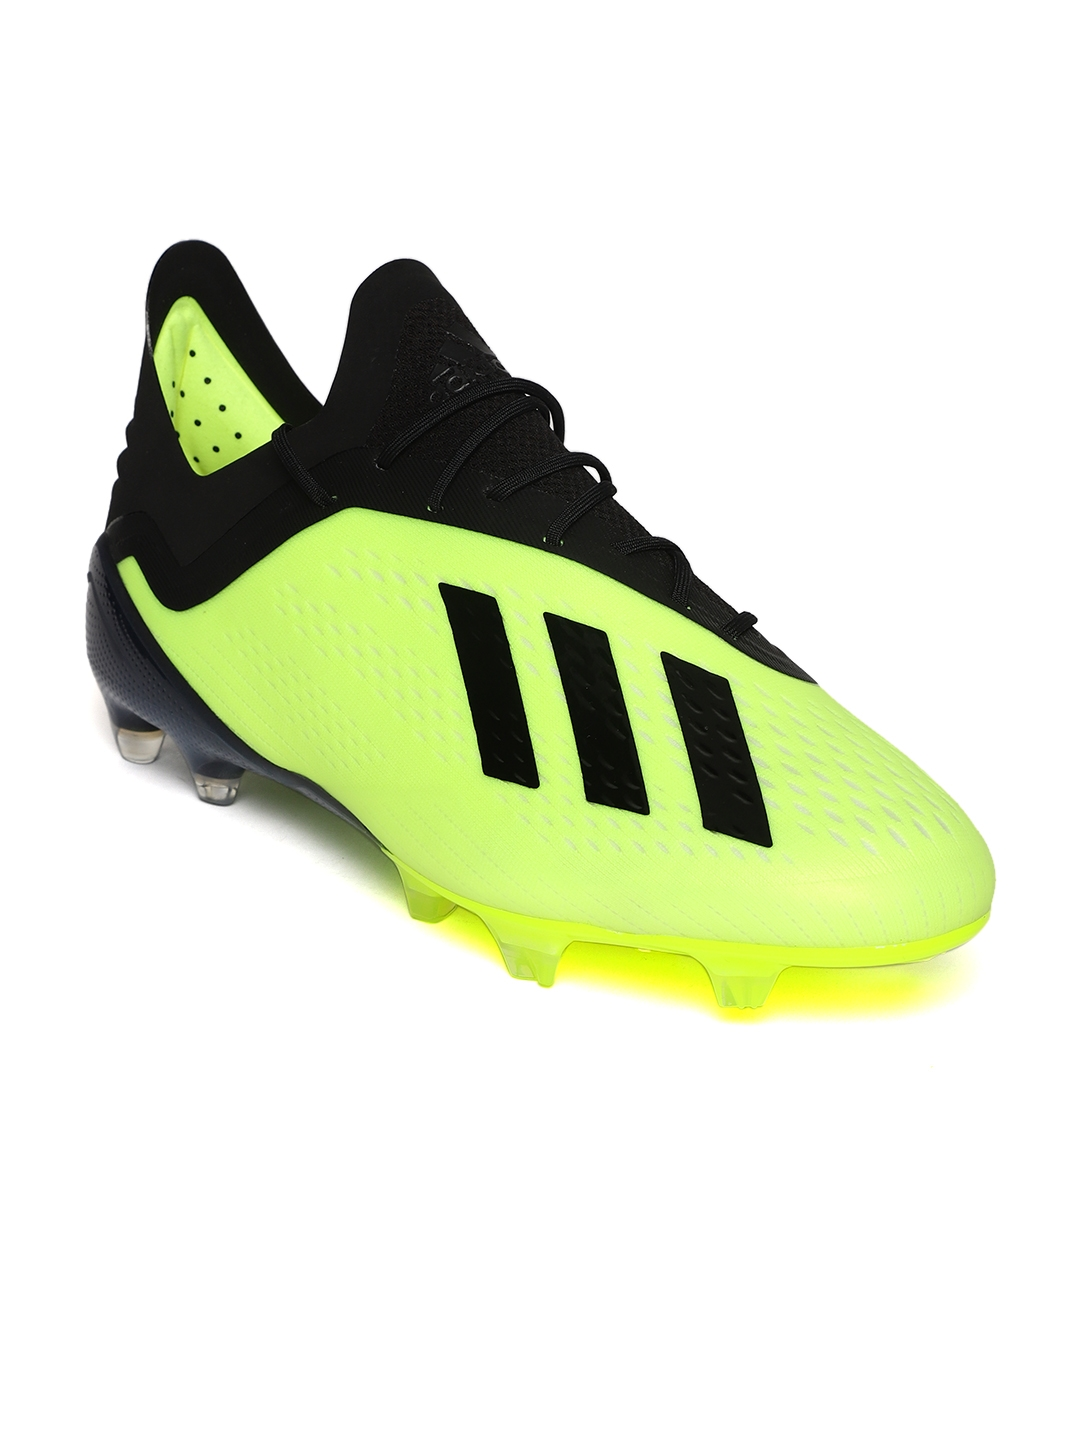 Buy ADIDAS Men Florescent Green   Black X 18.1 FG Football Shoes ... 4f5953355